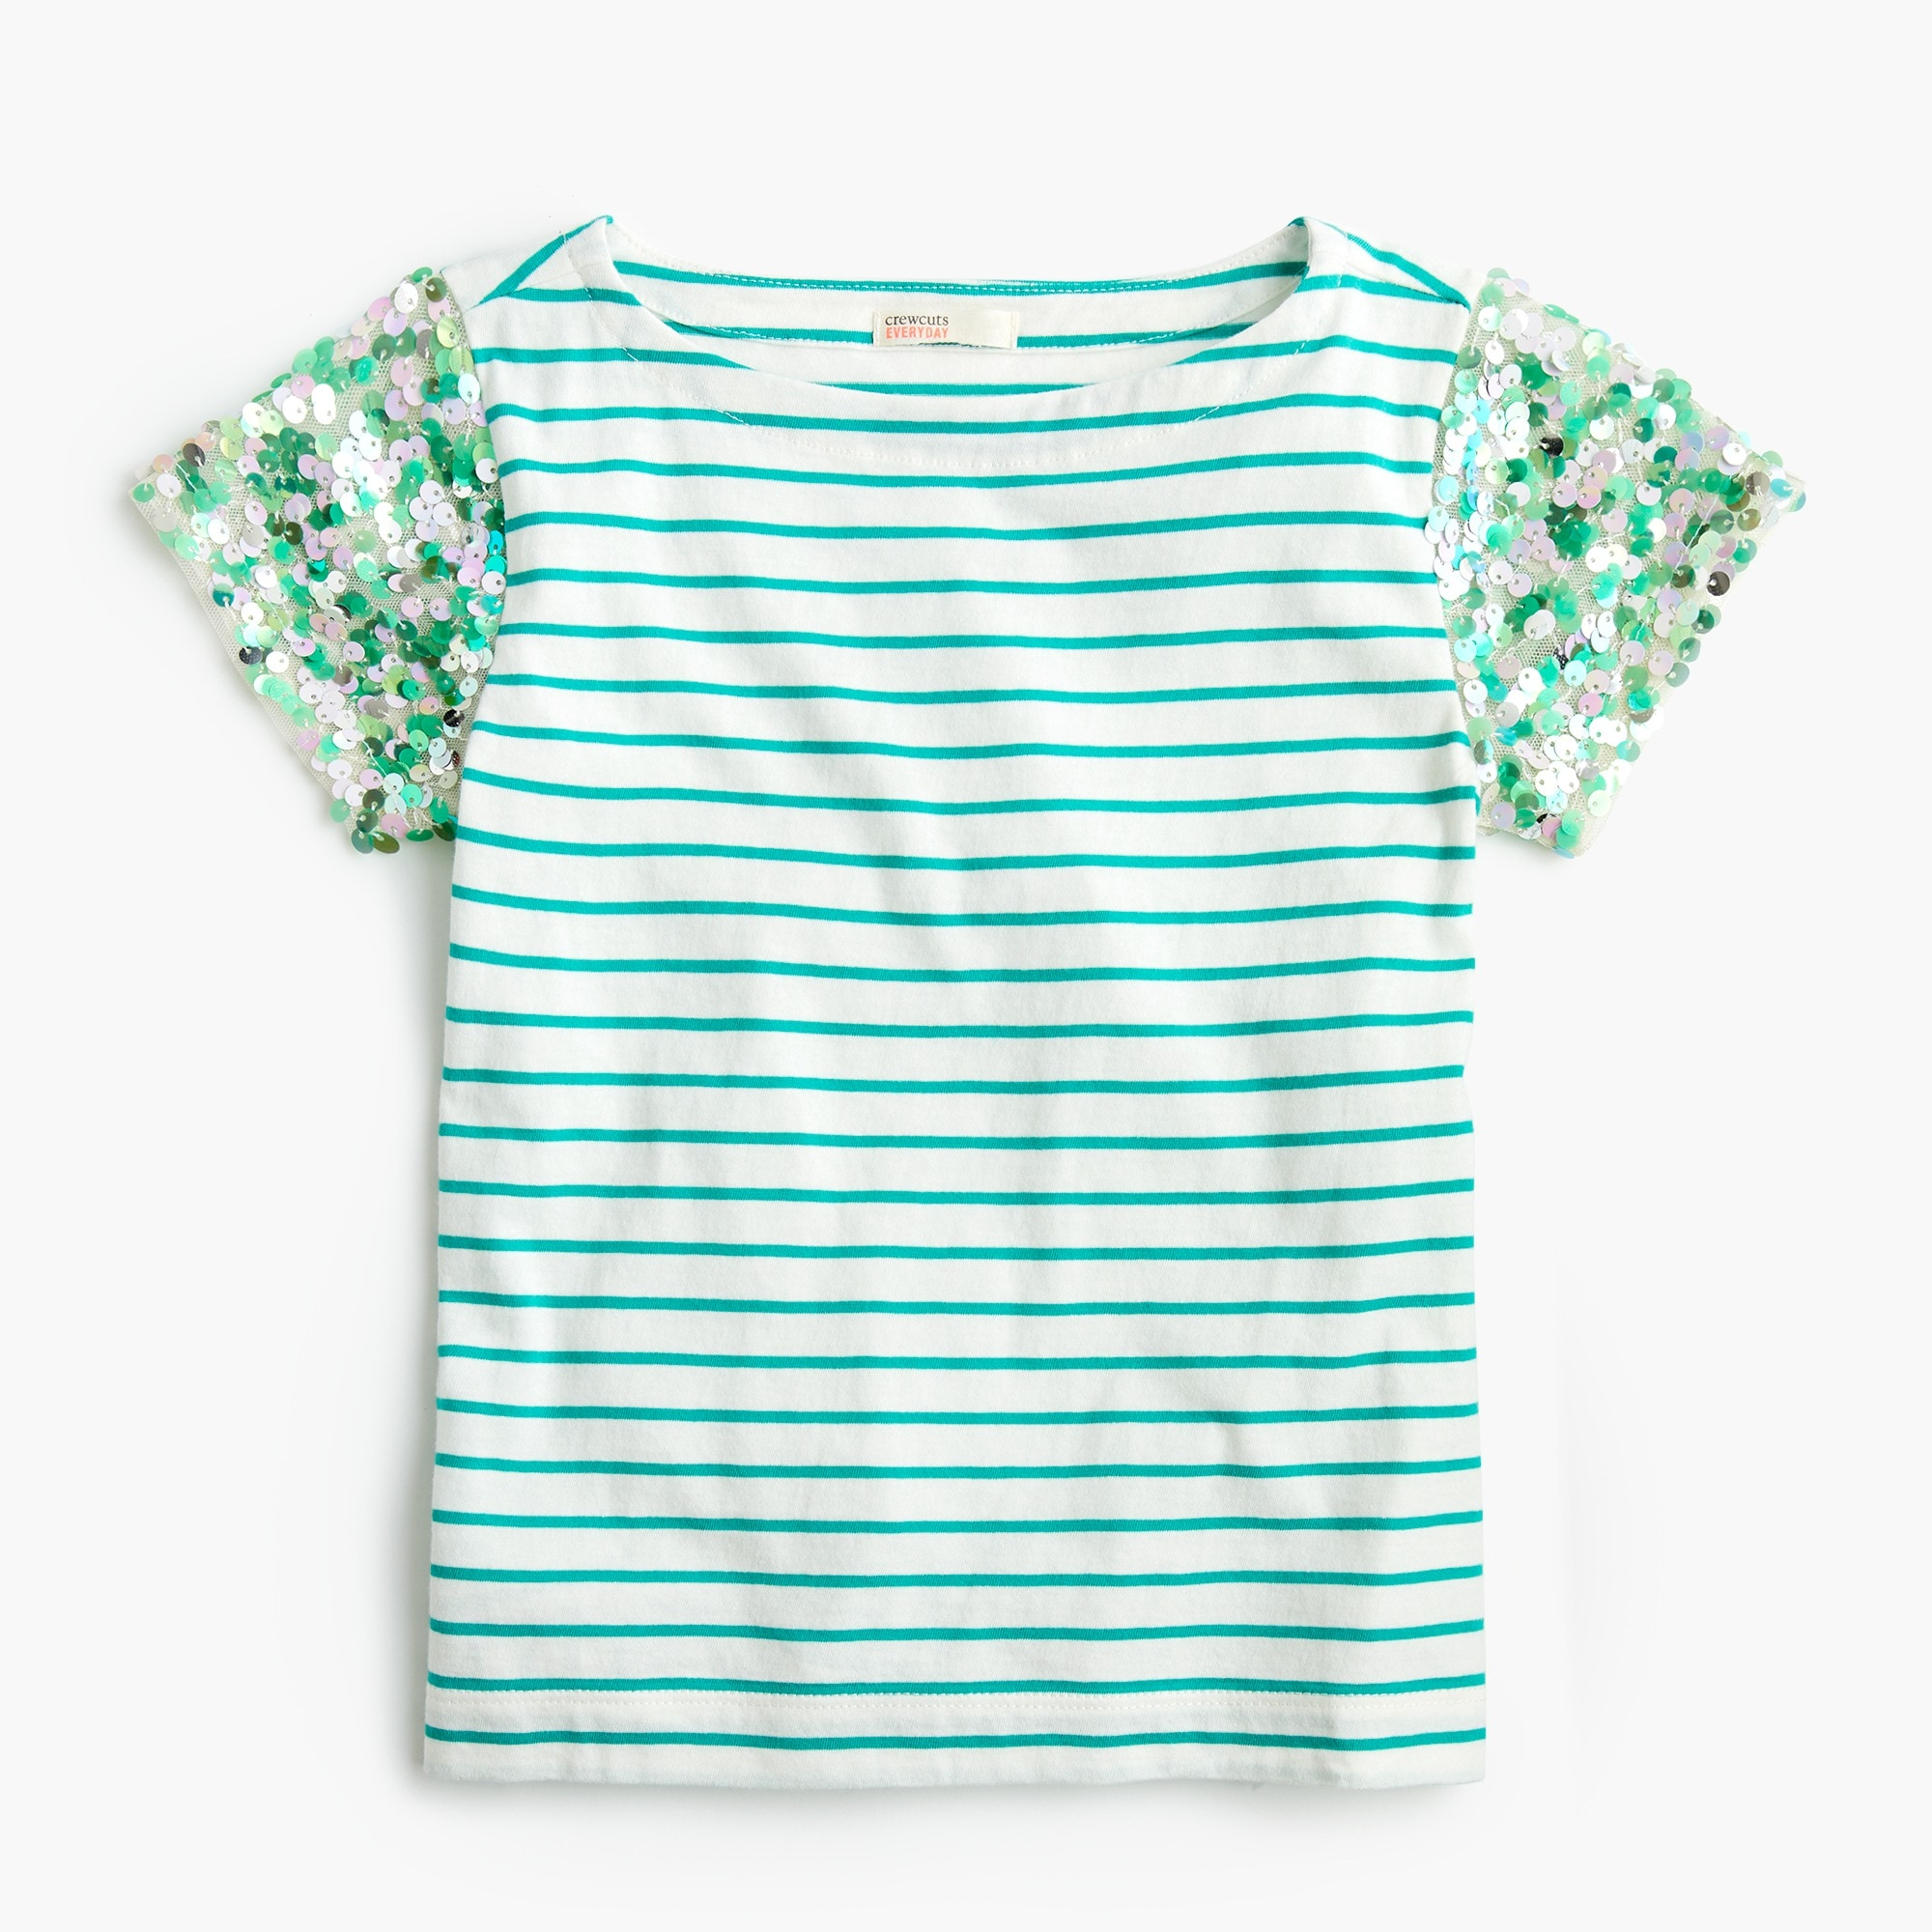 Girls' striped T-shirt with sequin sleeves